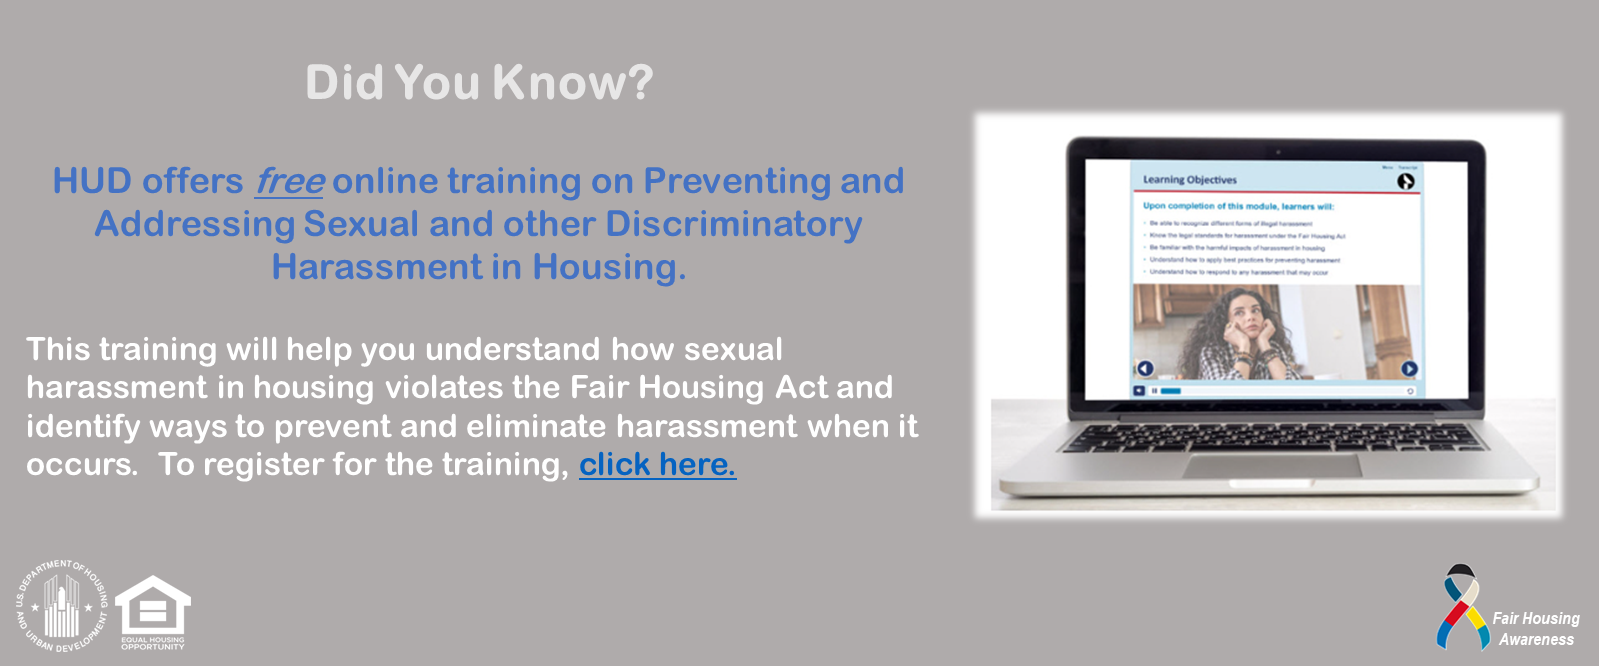 [HUD offers <em>free</em> online training on Preventing and Addressing Sexual and other Discriminatory Harassment in Housing.]. HUD Photo